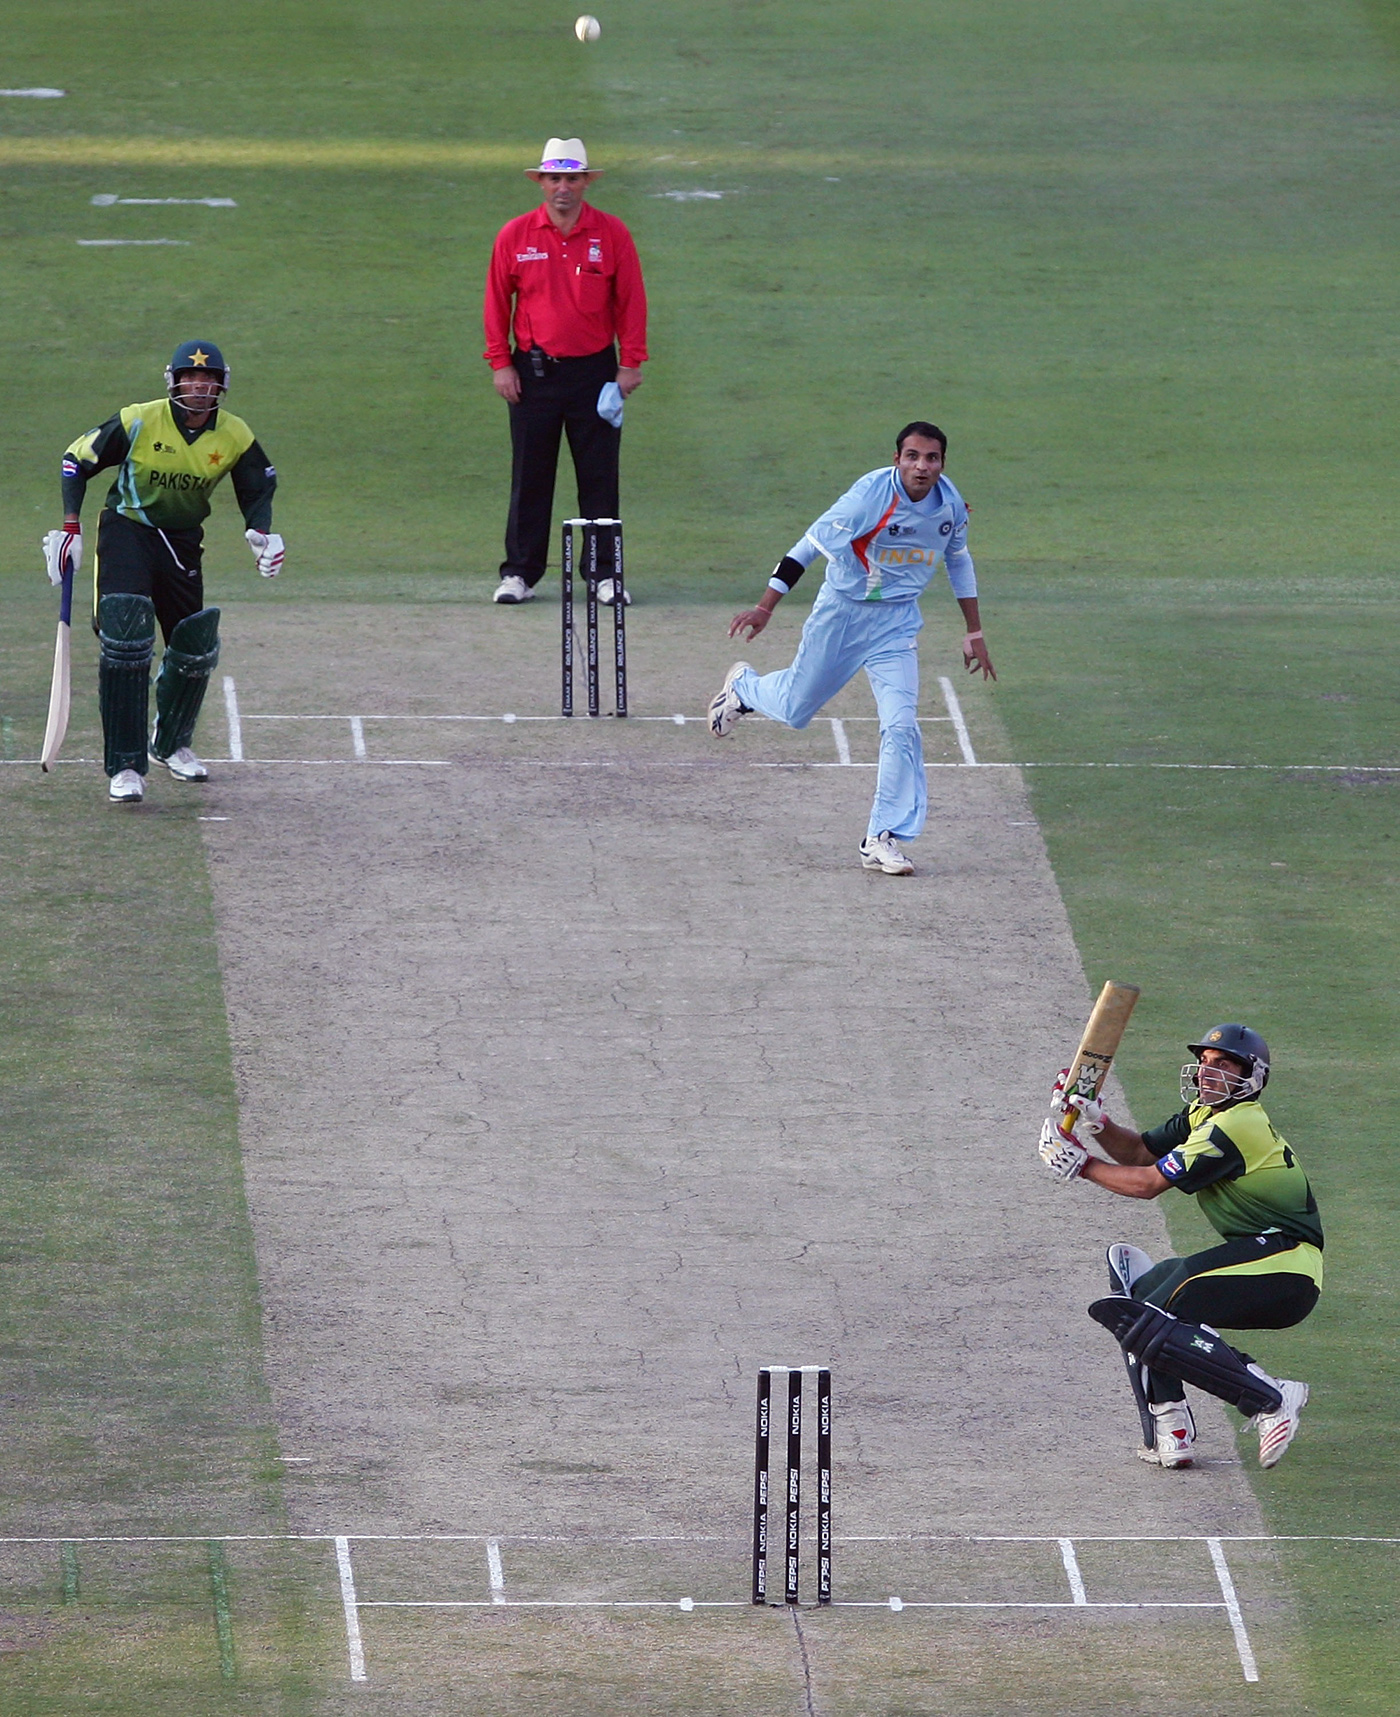 The moment we lost Twenty20 World Cup